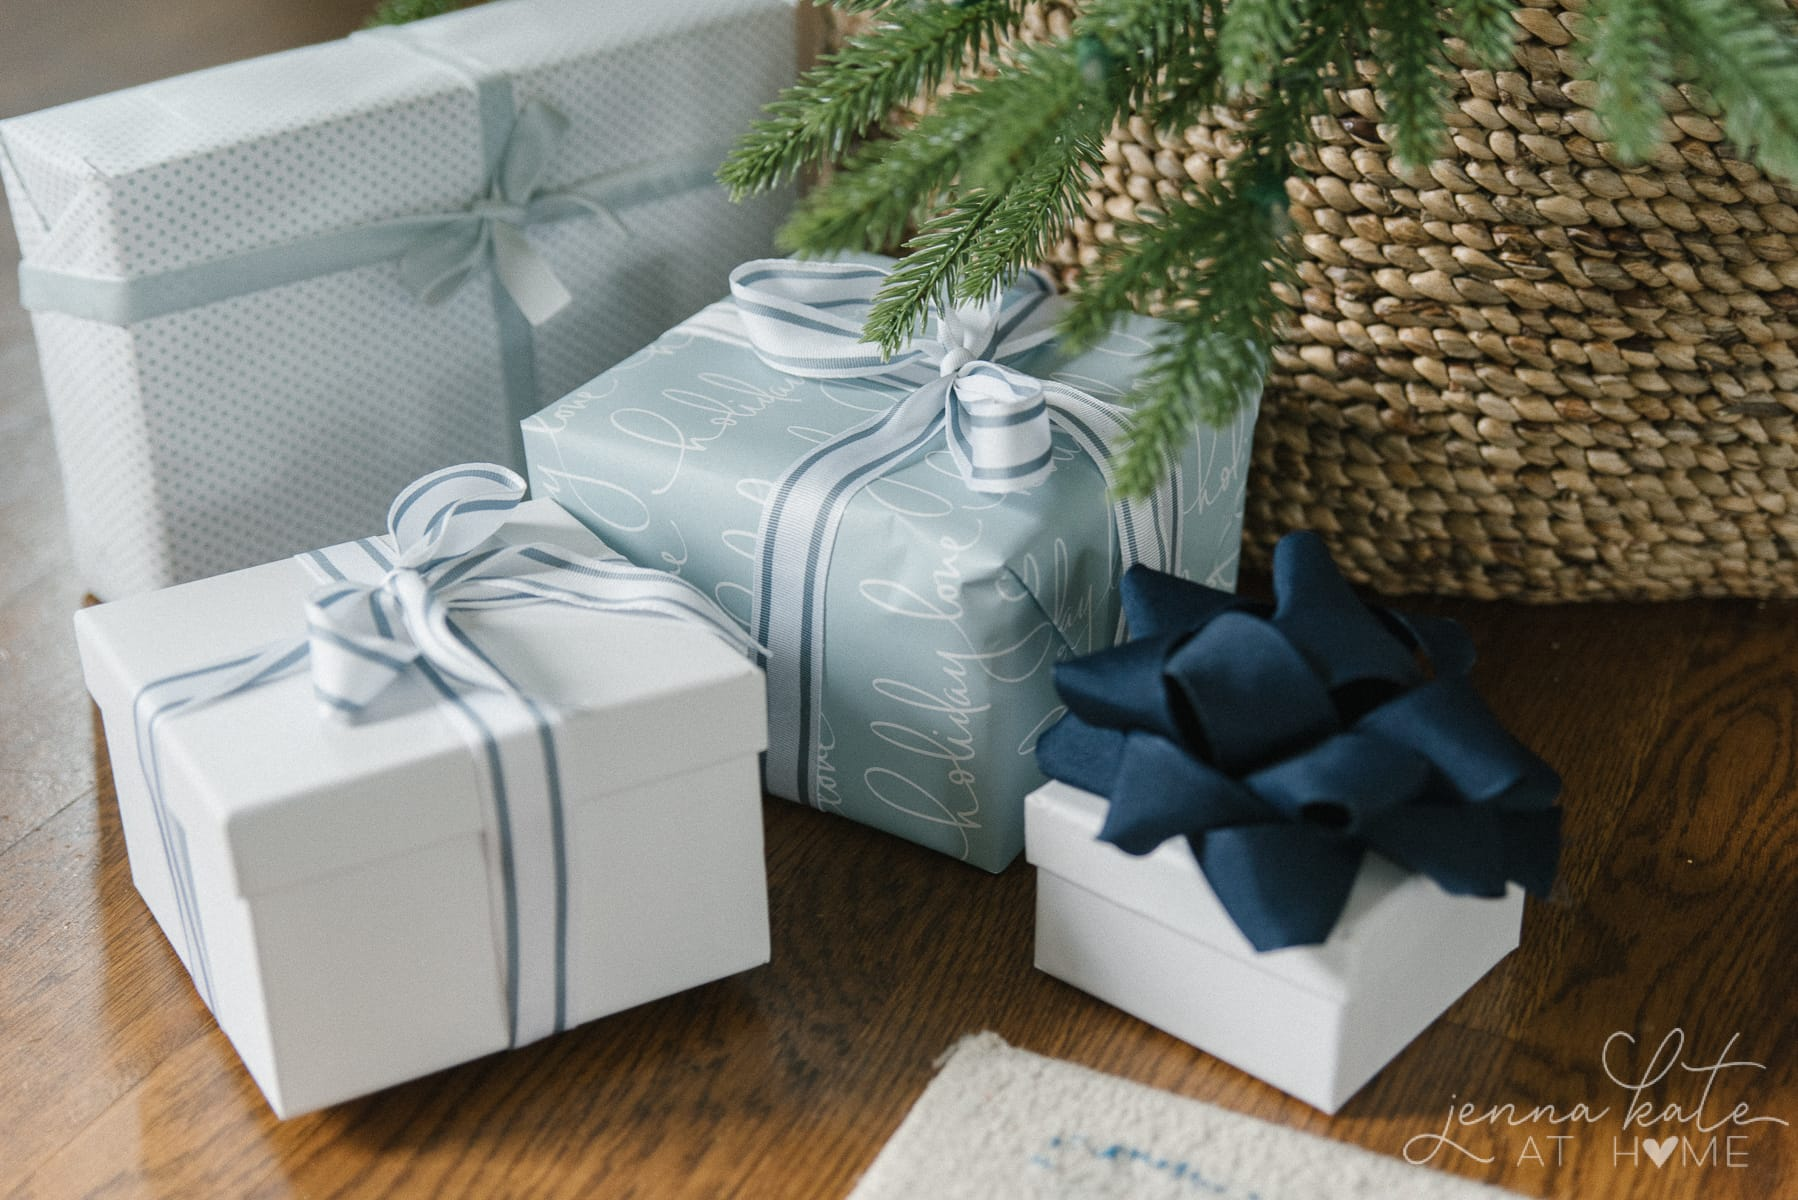 Different blue and silver wrapping paper and bows for the Christmas gifts